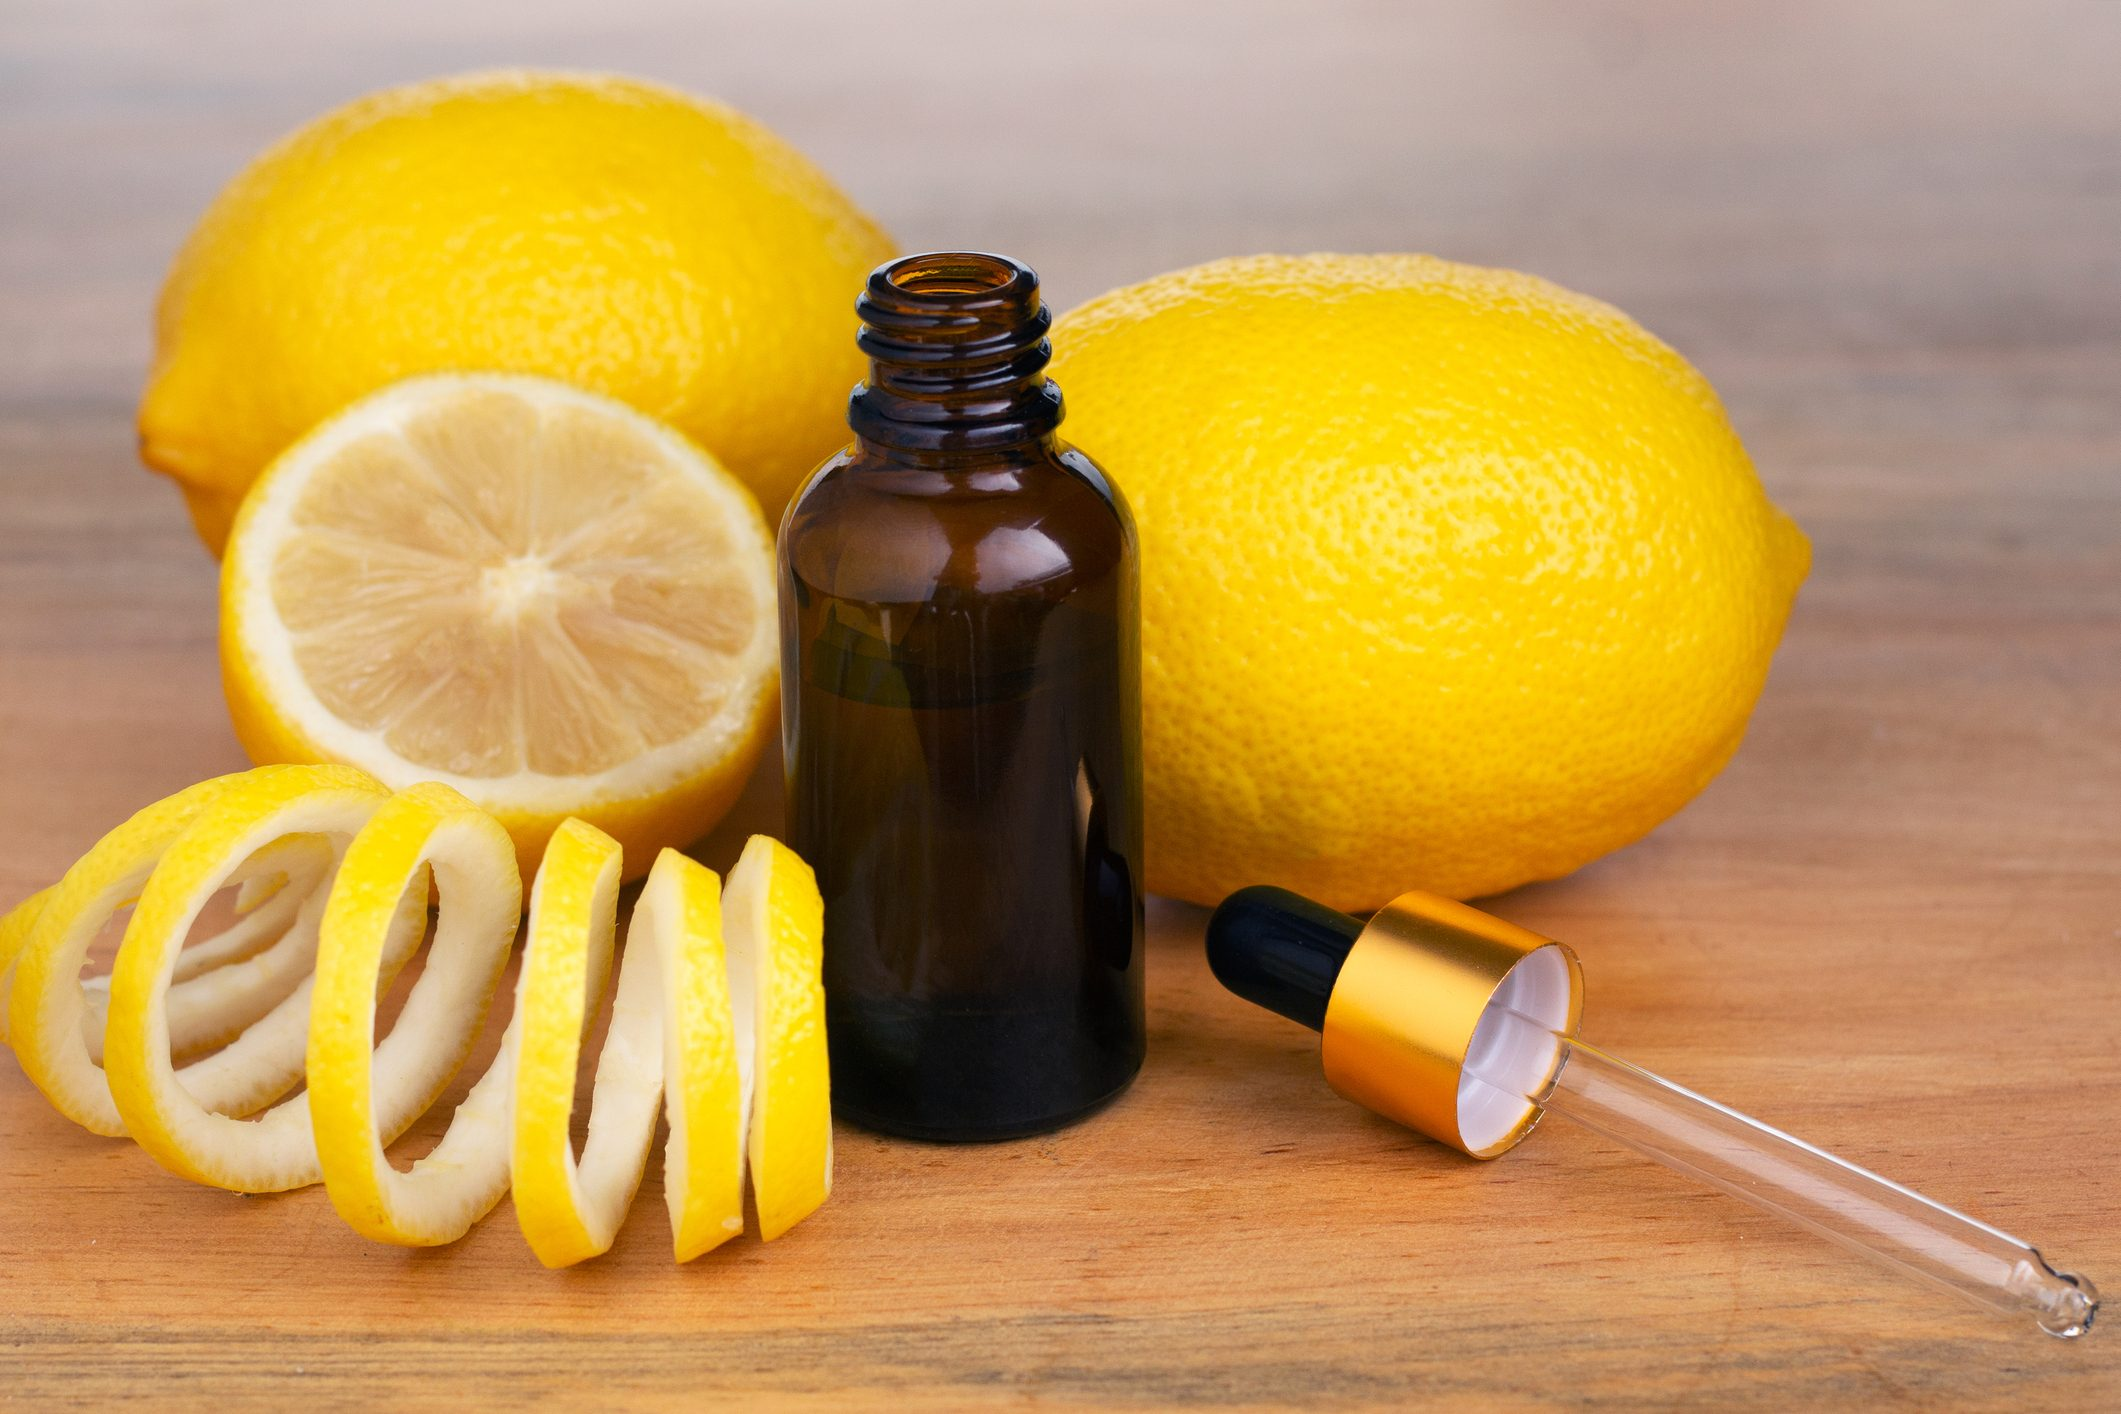 Lemon Essential Oil In A Bottle Withlemon Essential Oil In A Bottle With Lemon On The Side